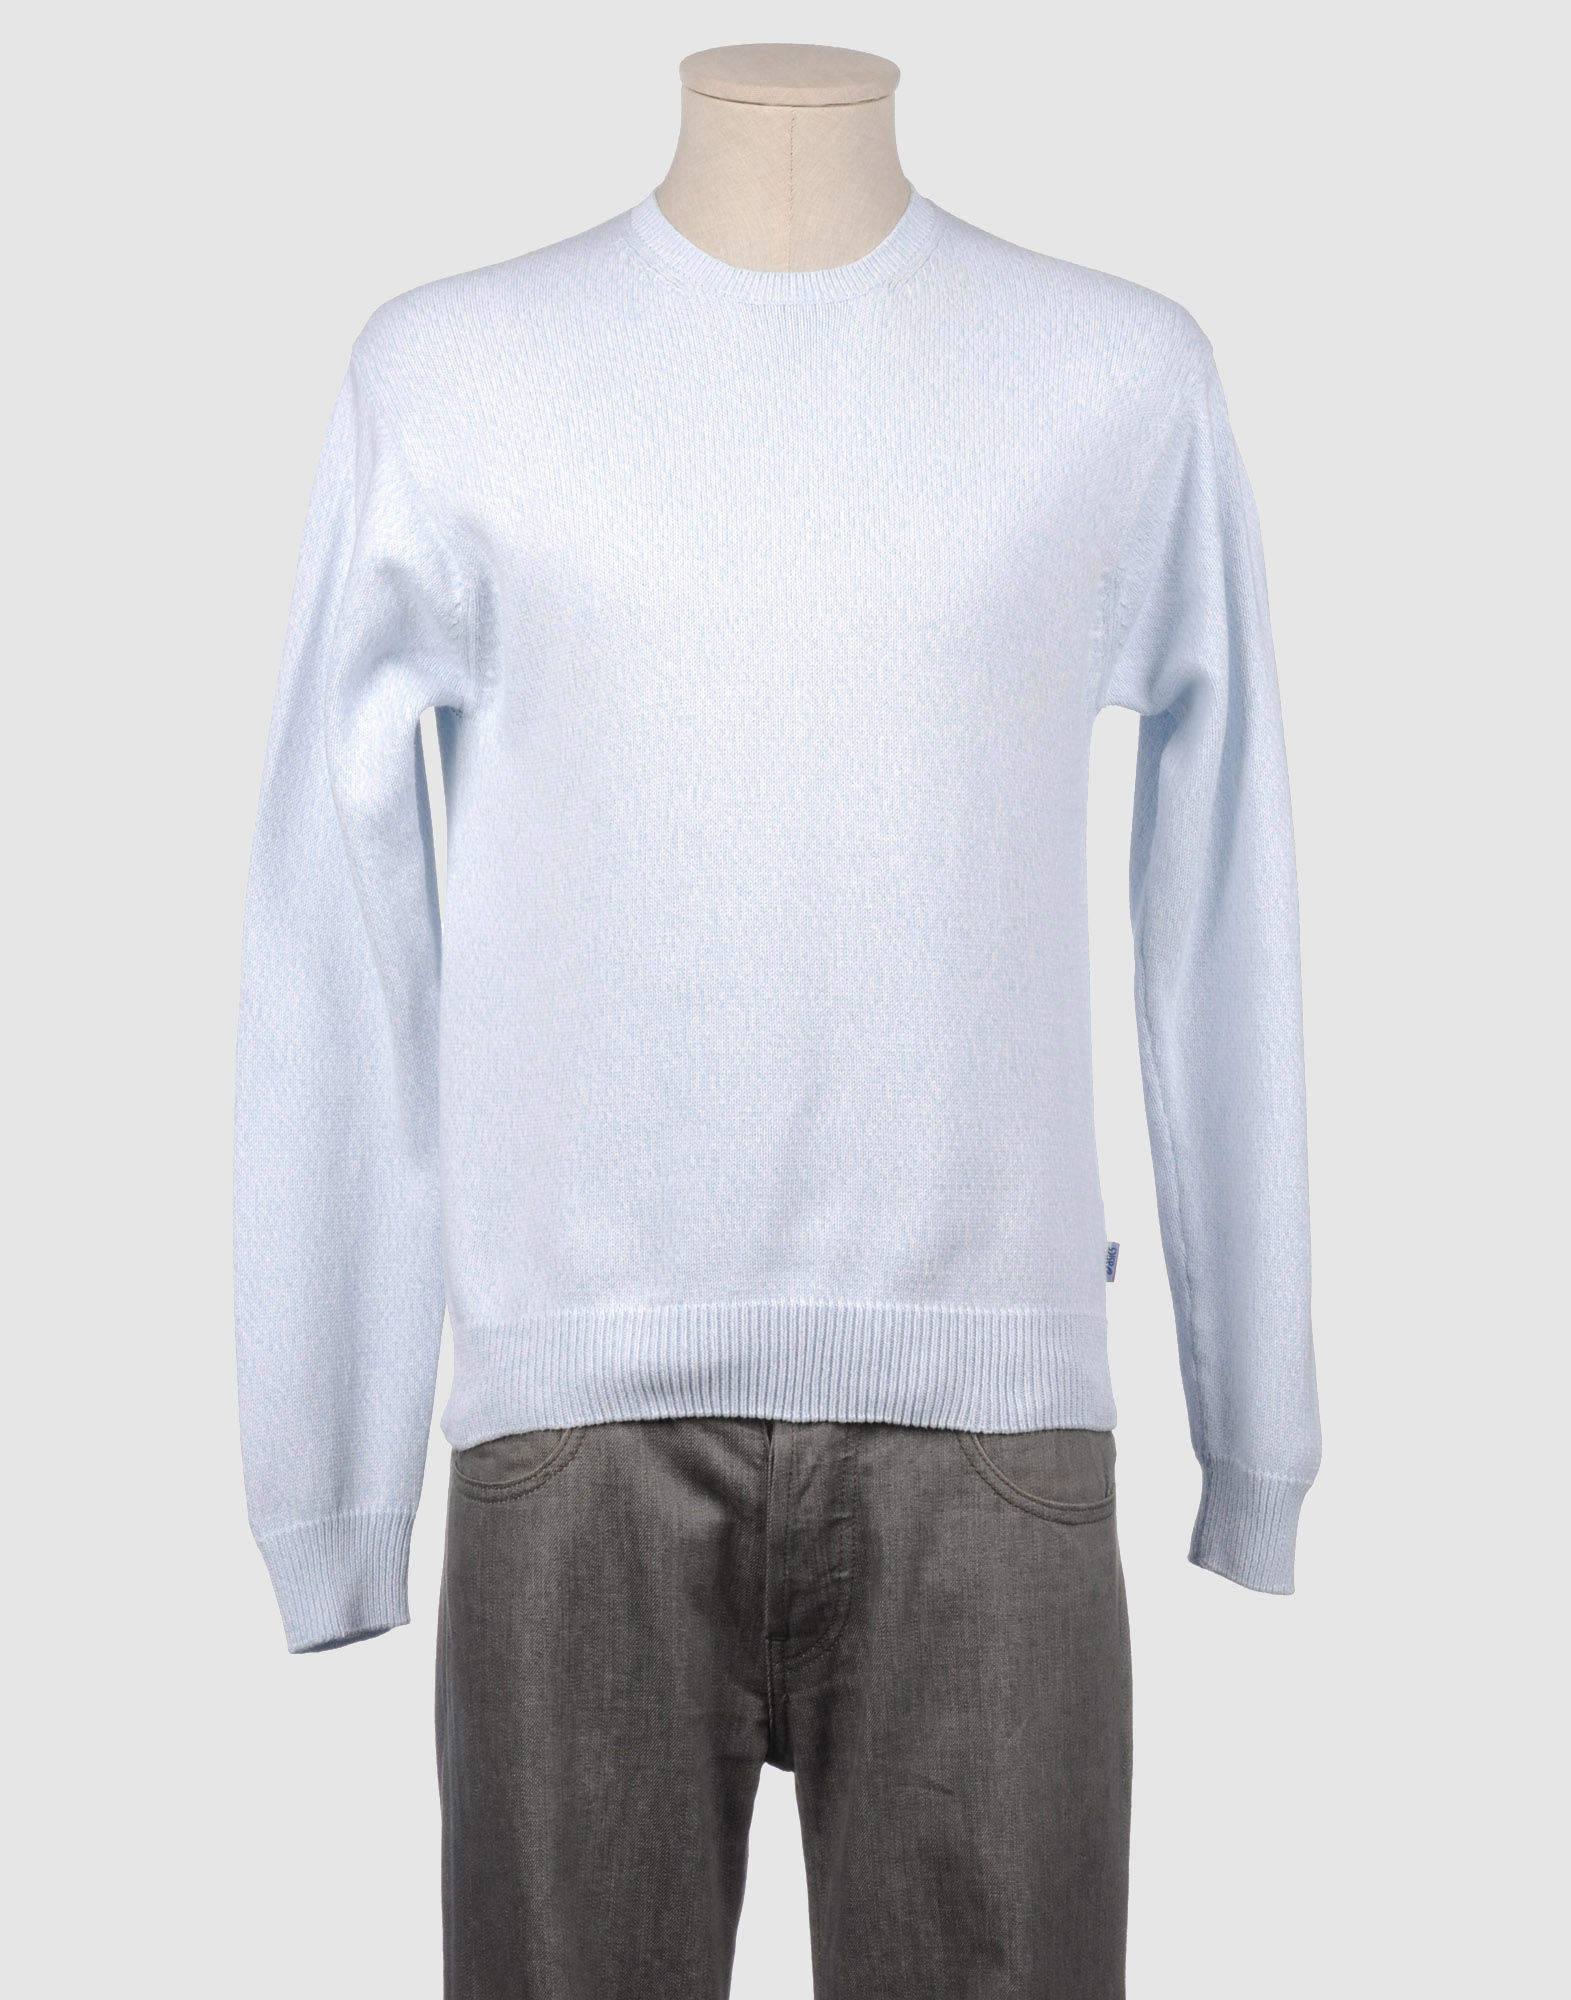 Cocoon München Asics Crewneck Sweater In Blue For Men | Lyst